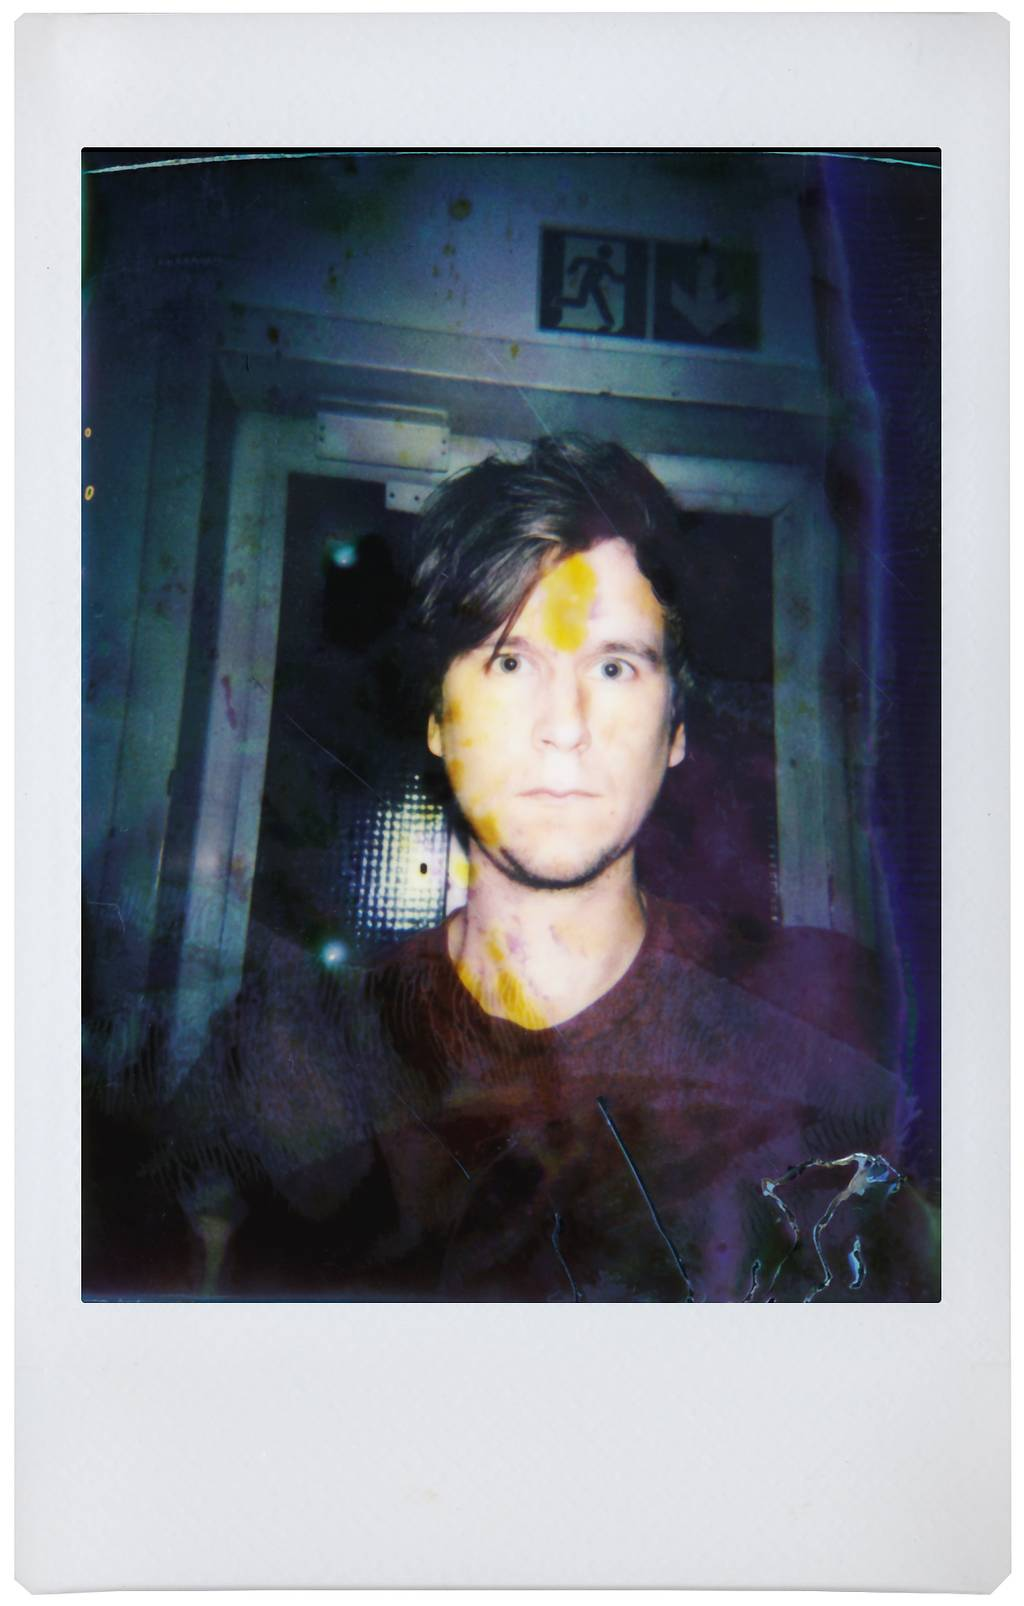 Chemical Manipulations with the Lomo'Instant